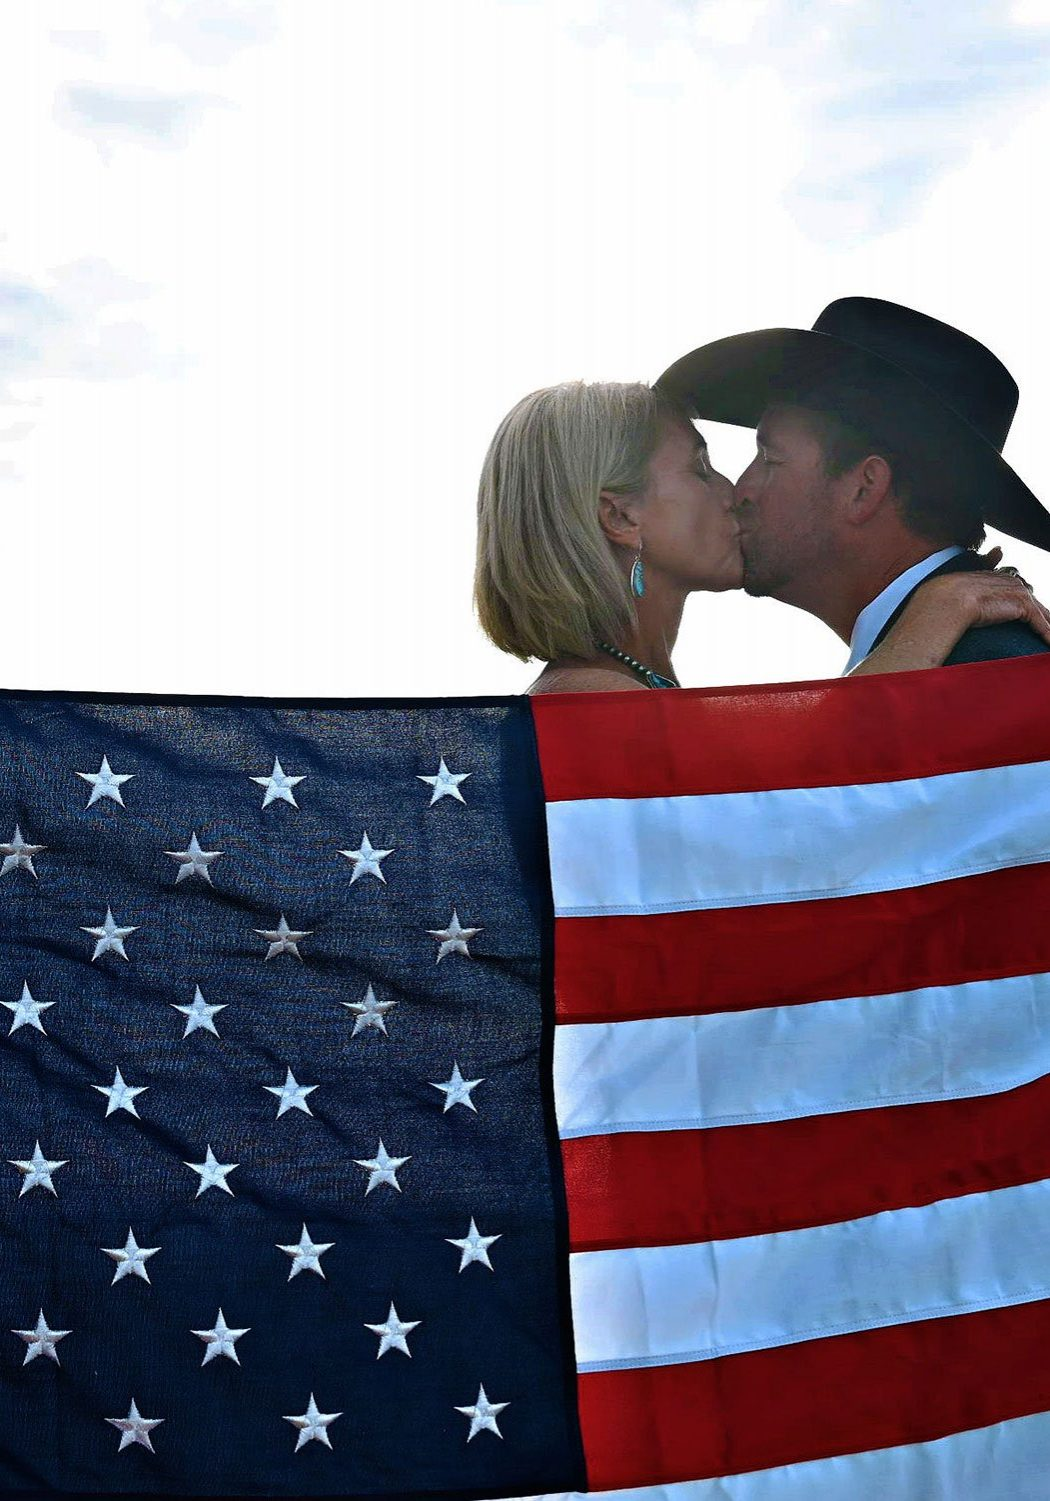 Just married + American flag